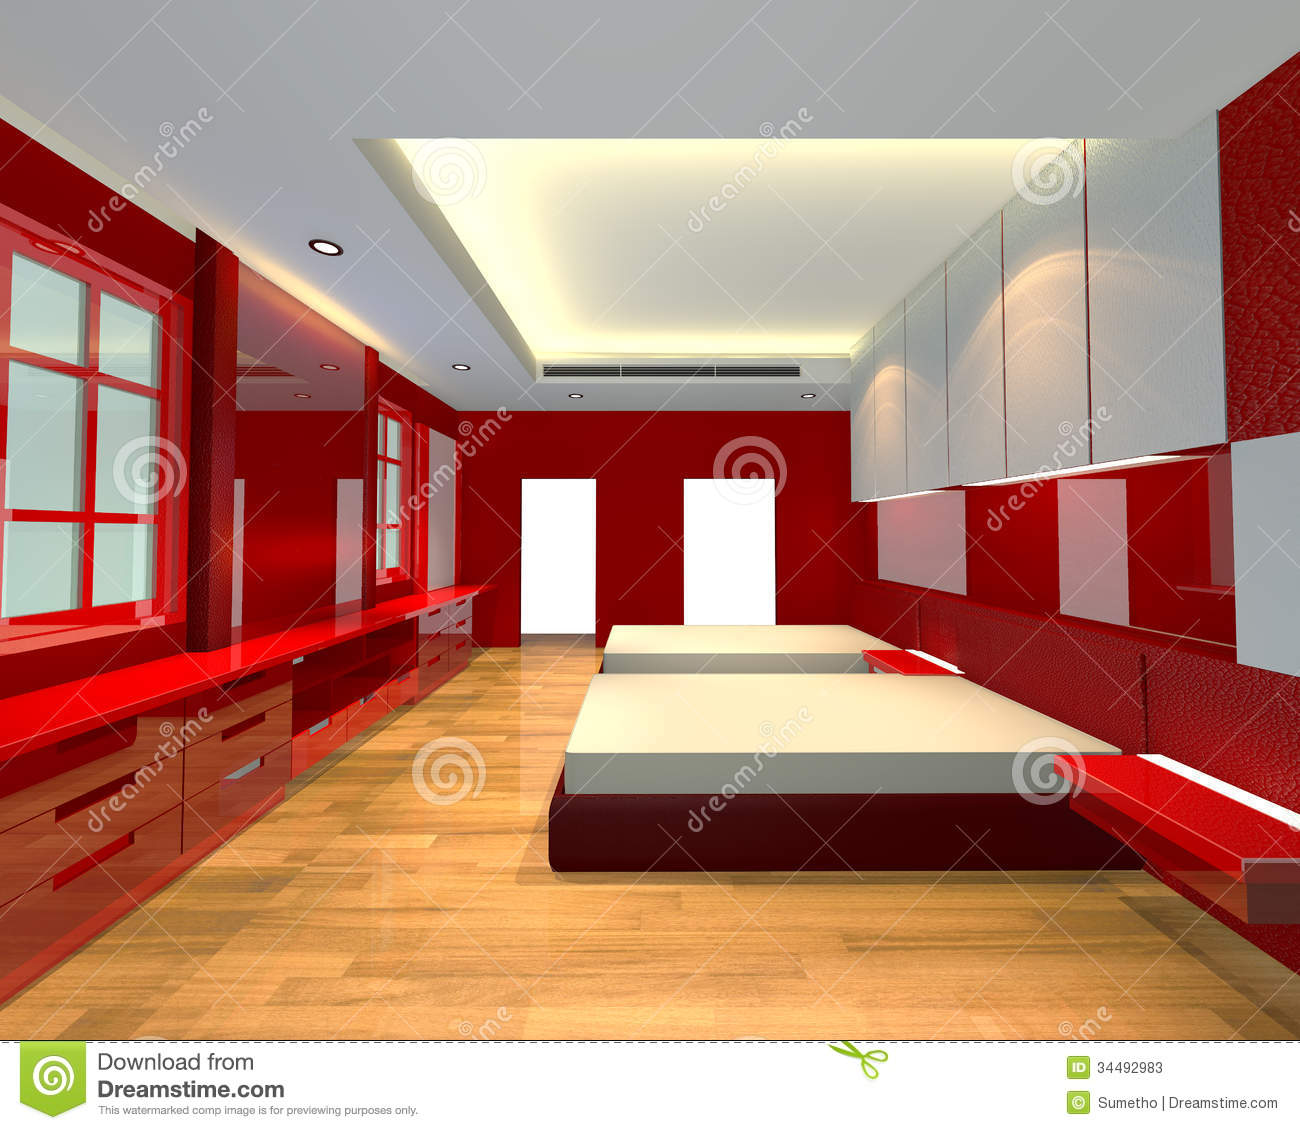 interior design bedroom red theme stock photos image 34492983. Black Bedroom Furniture Sets. Home Design Ideas